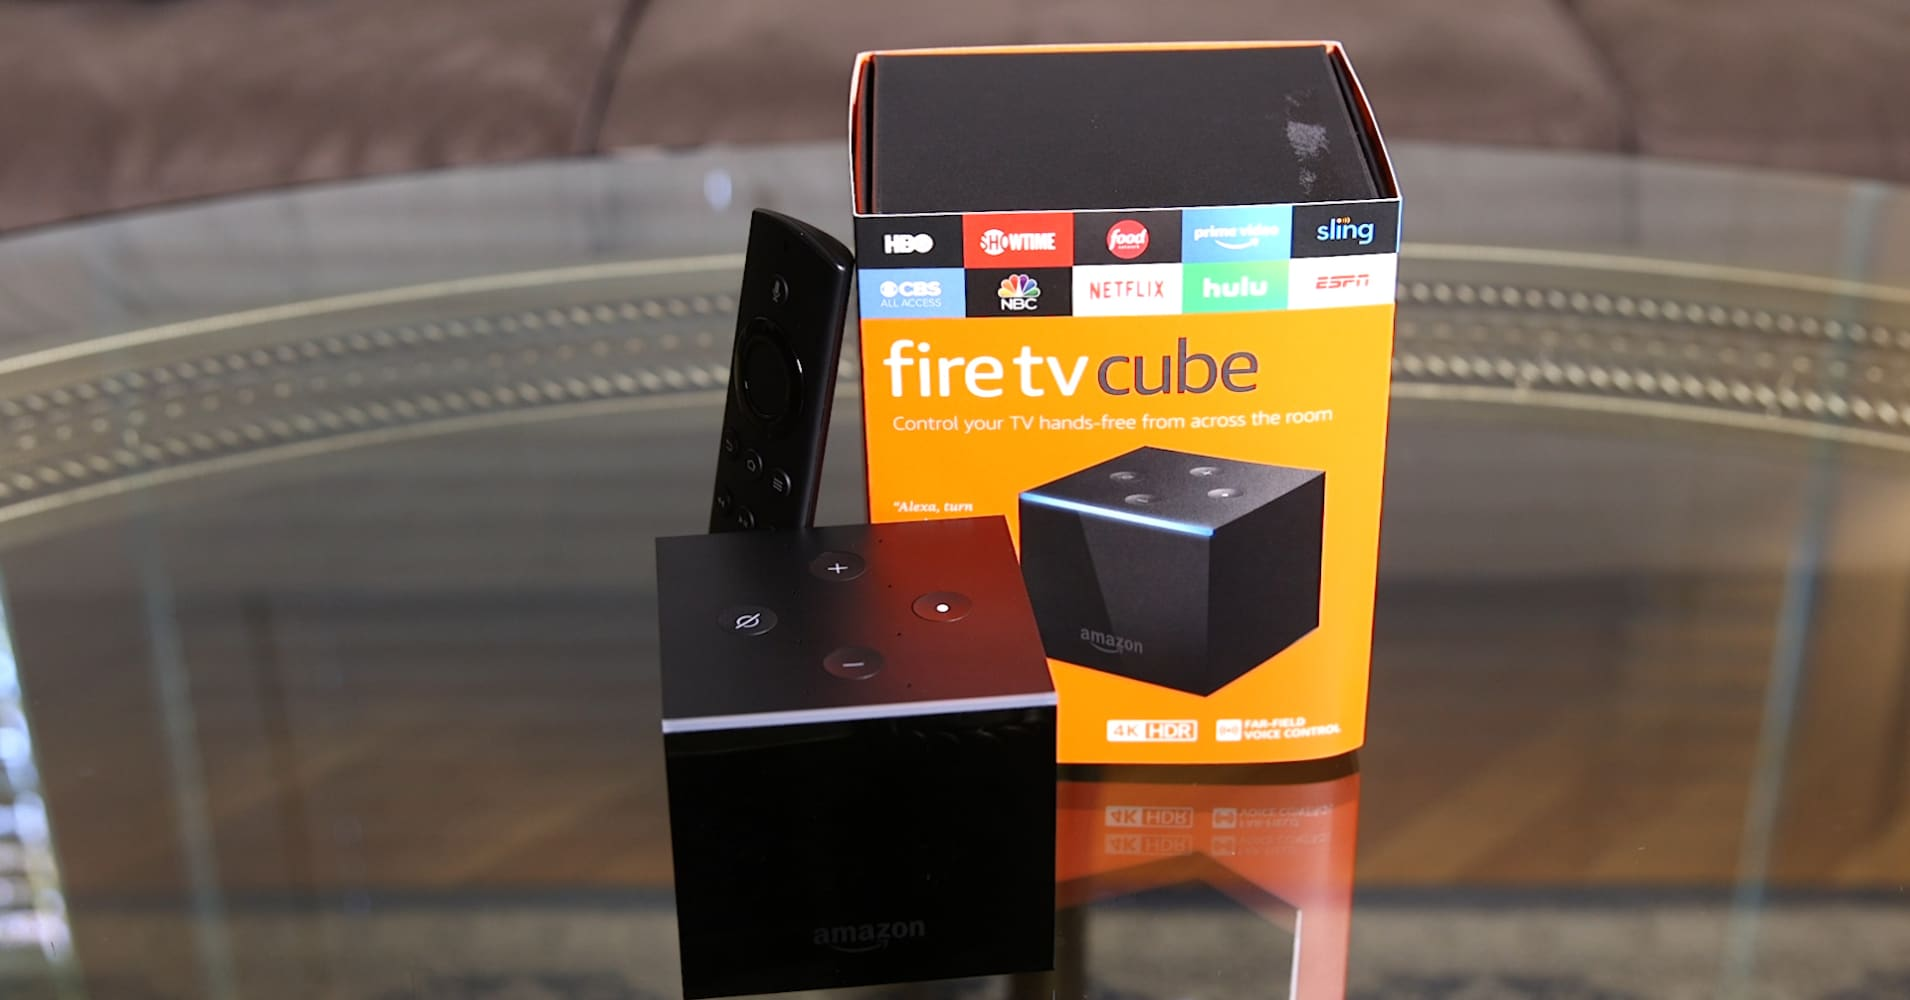 02 Box Amazon S Fire Tv Cube Is A Must Buy If You Hate Losing Your Remote